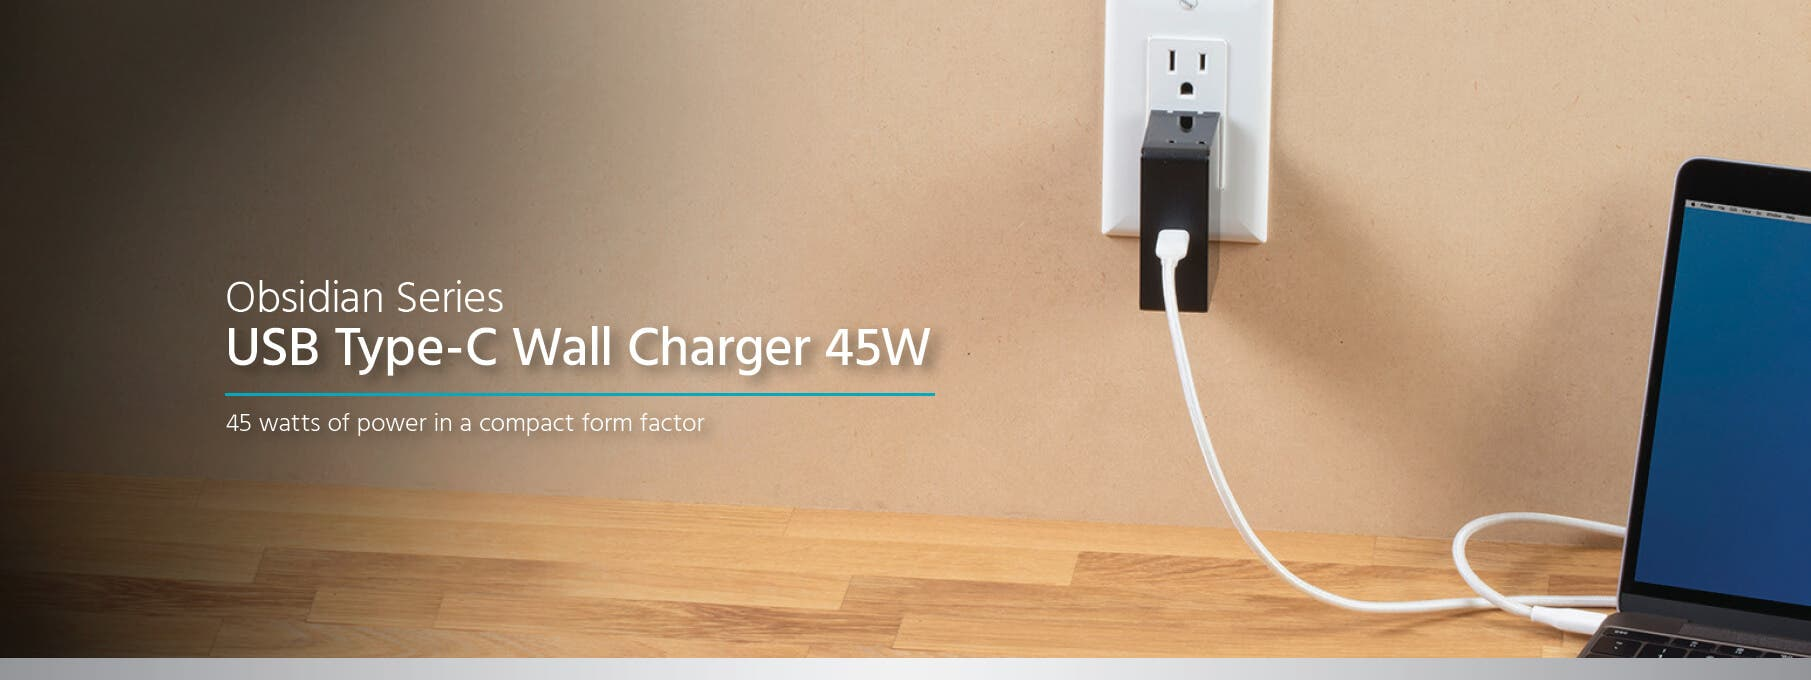 USB Type-C Wall Charger